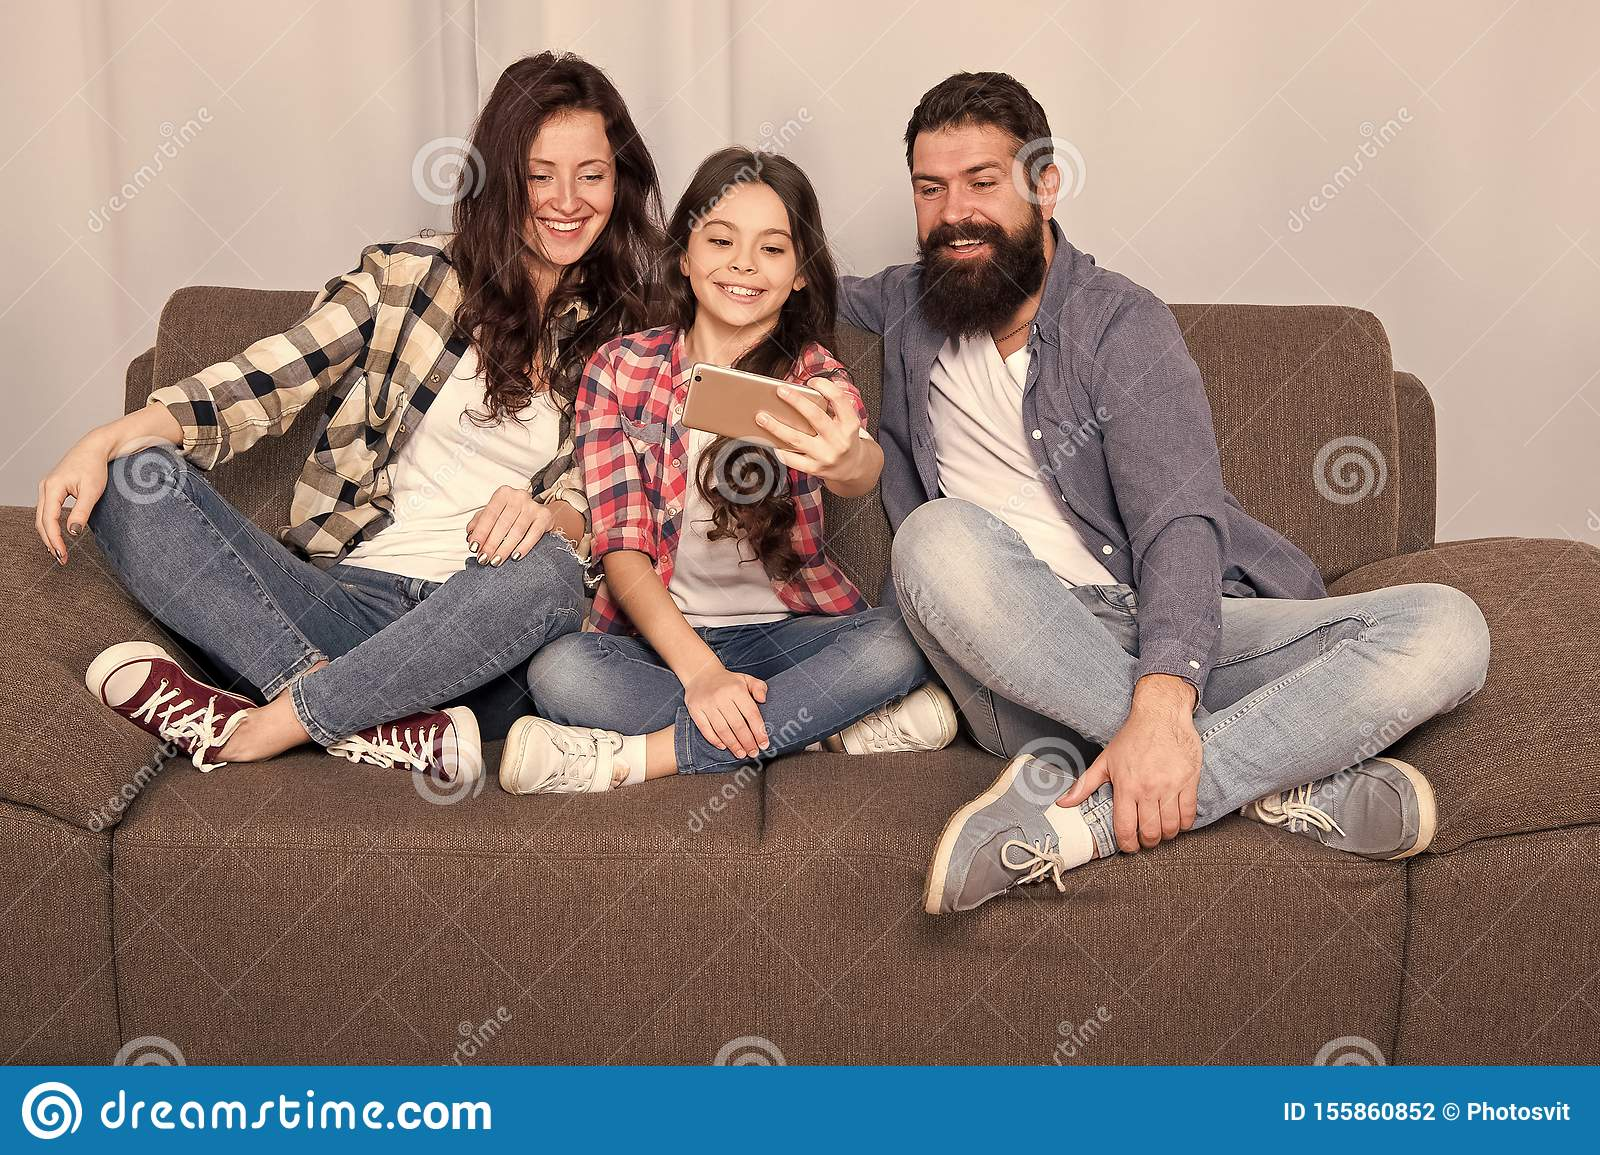 Capture happy moments. Family spend weekend together. Use smartphone for selfie. Friendly family having fun together